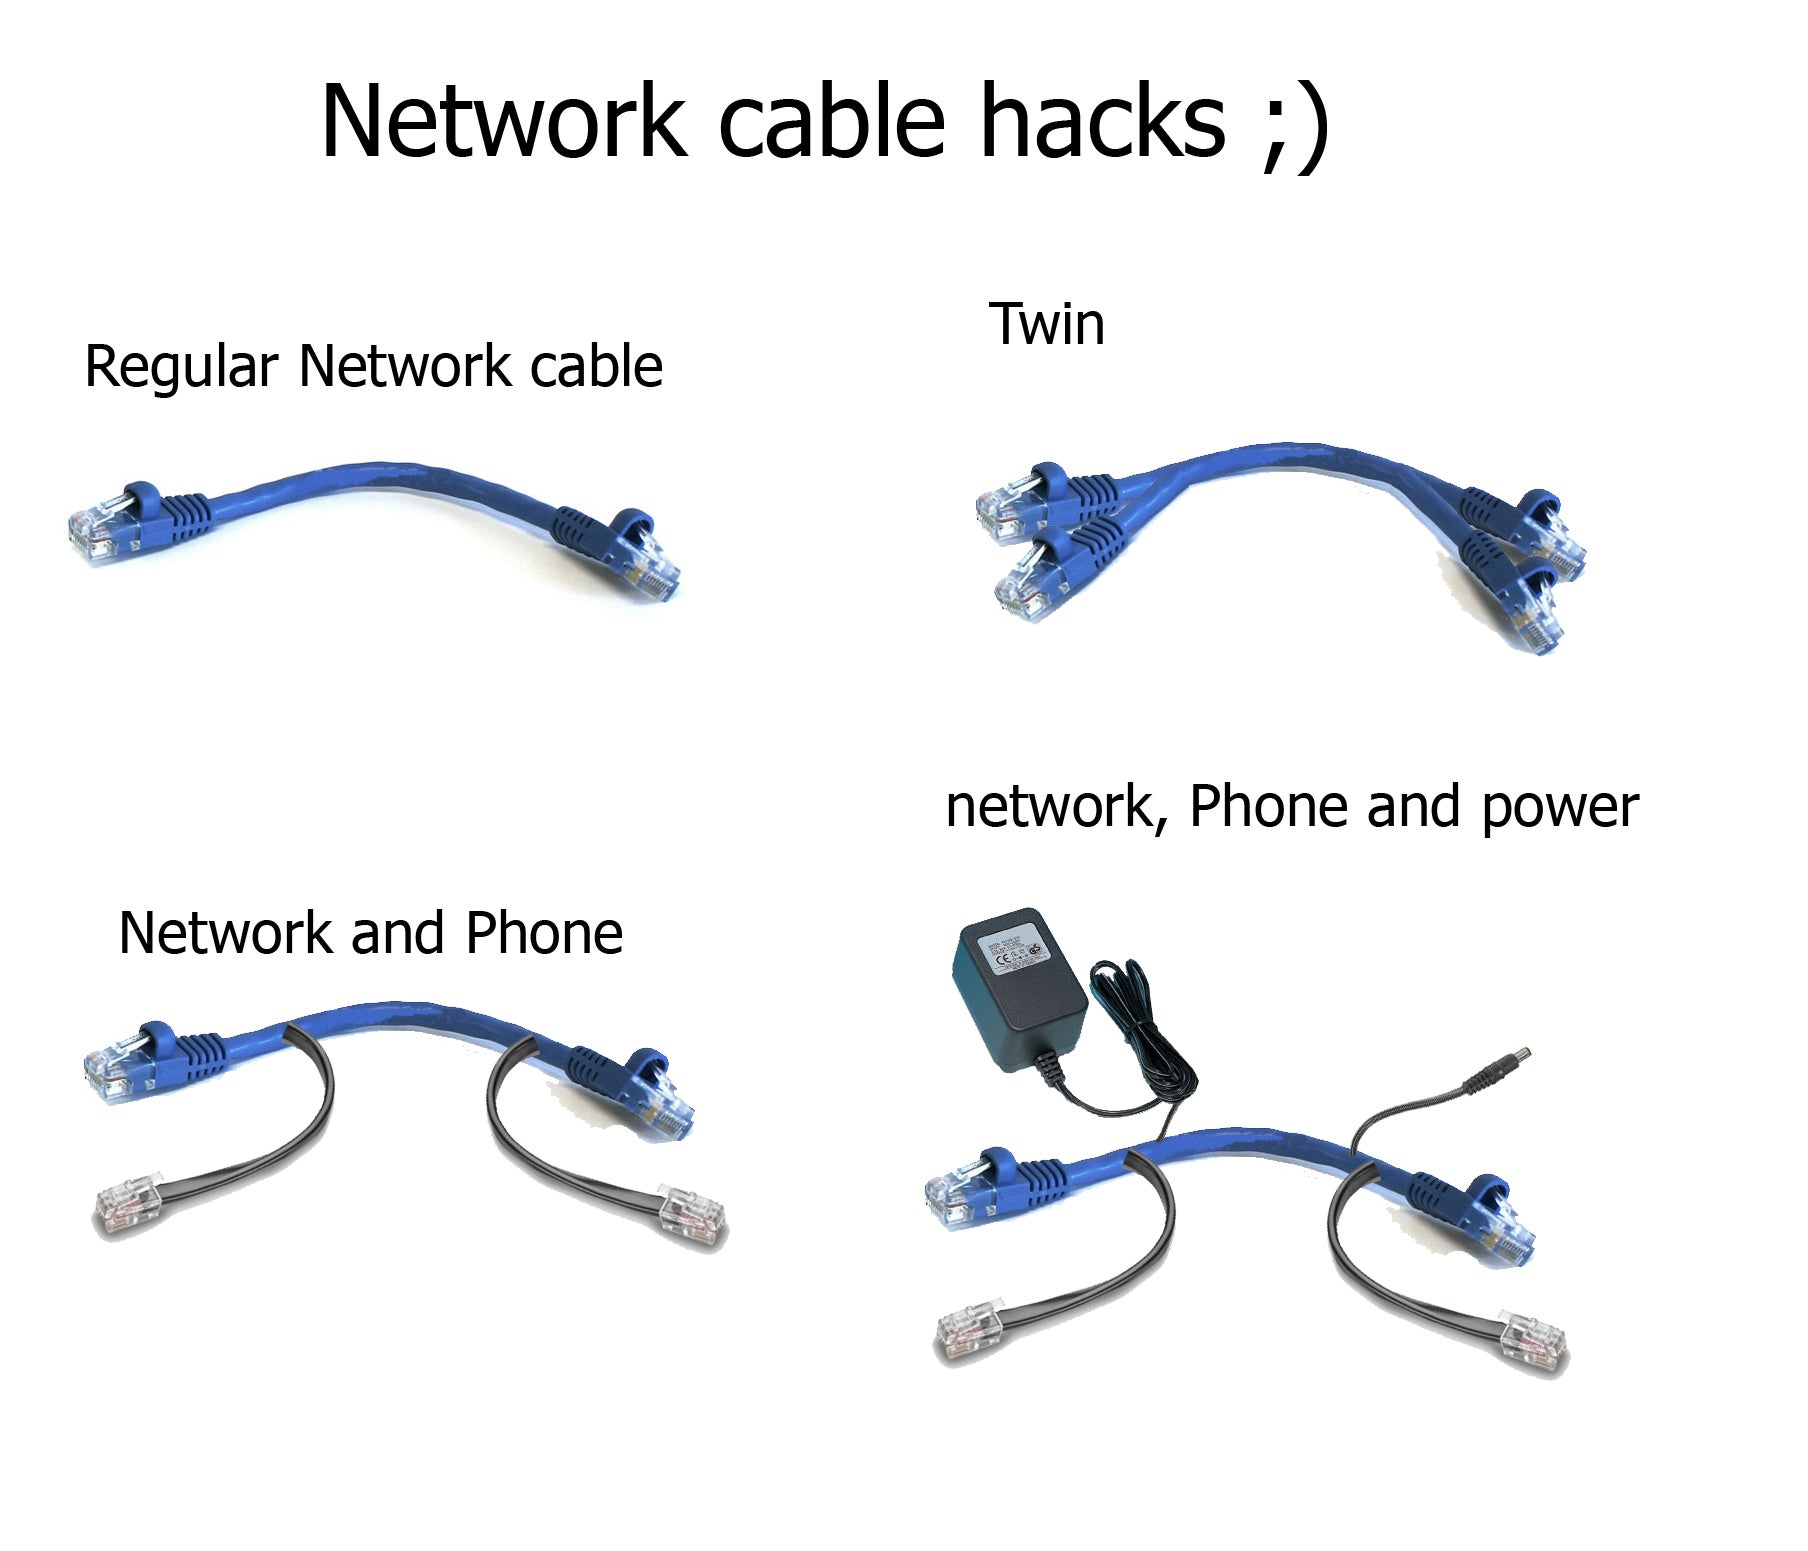 Network Cable Hack 5 Steps Rj25 Wiring Diagram For Connector